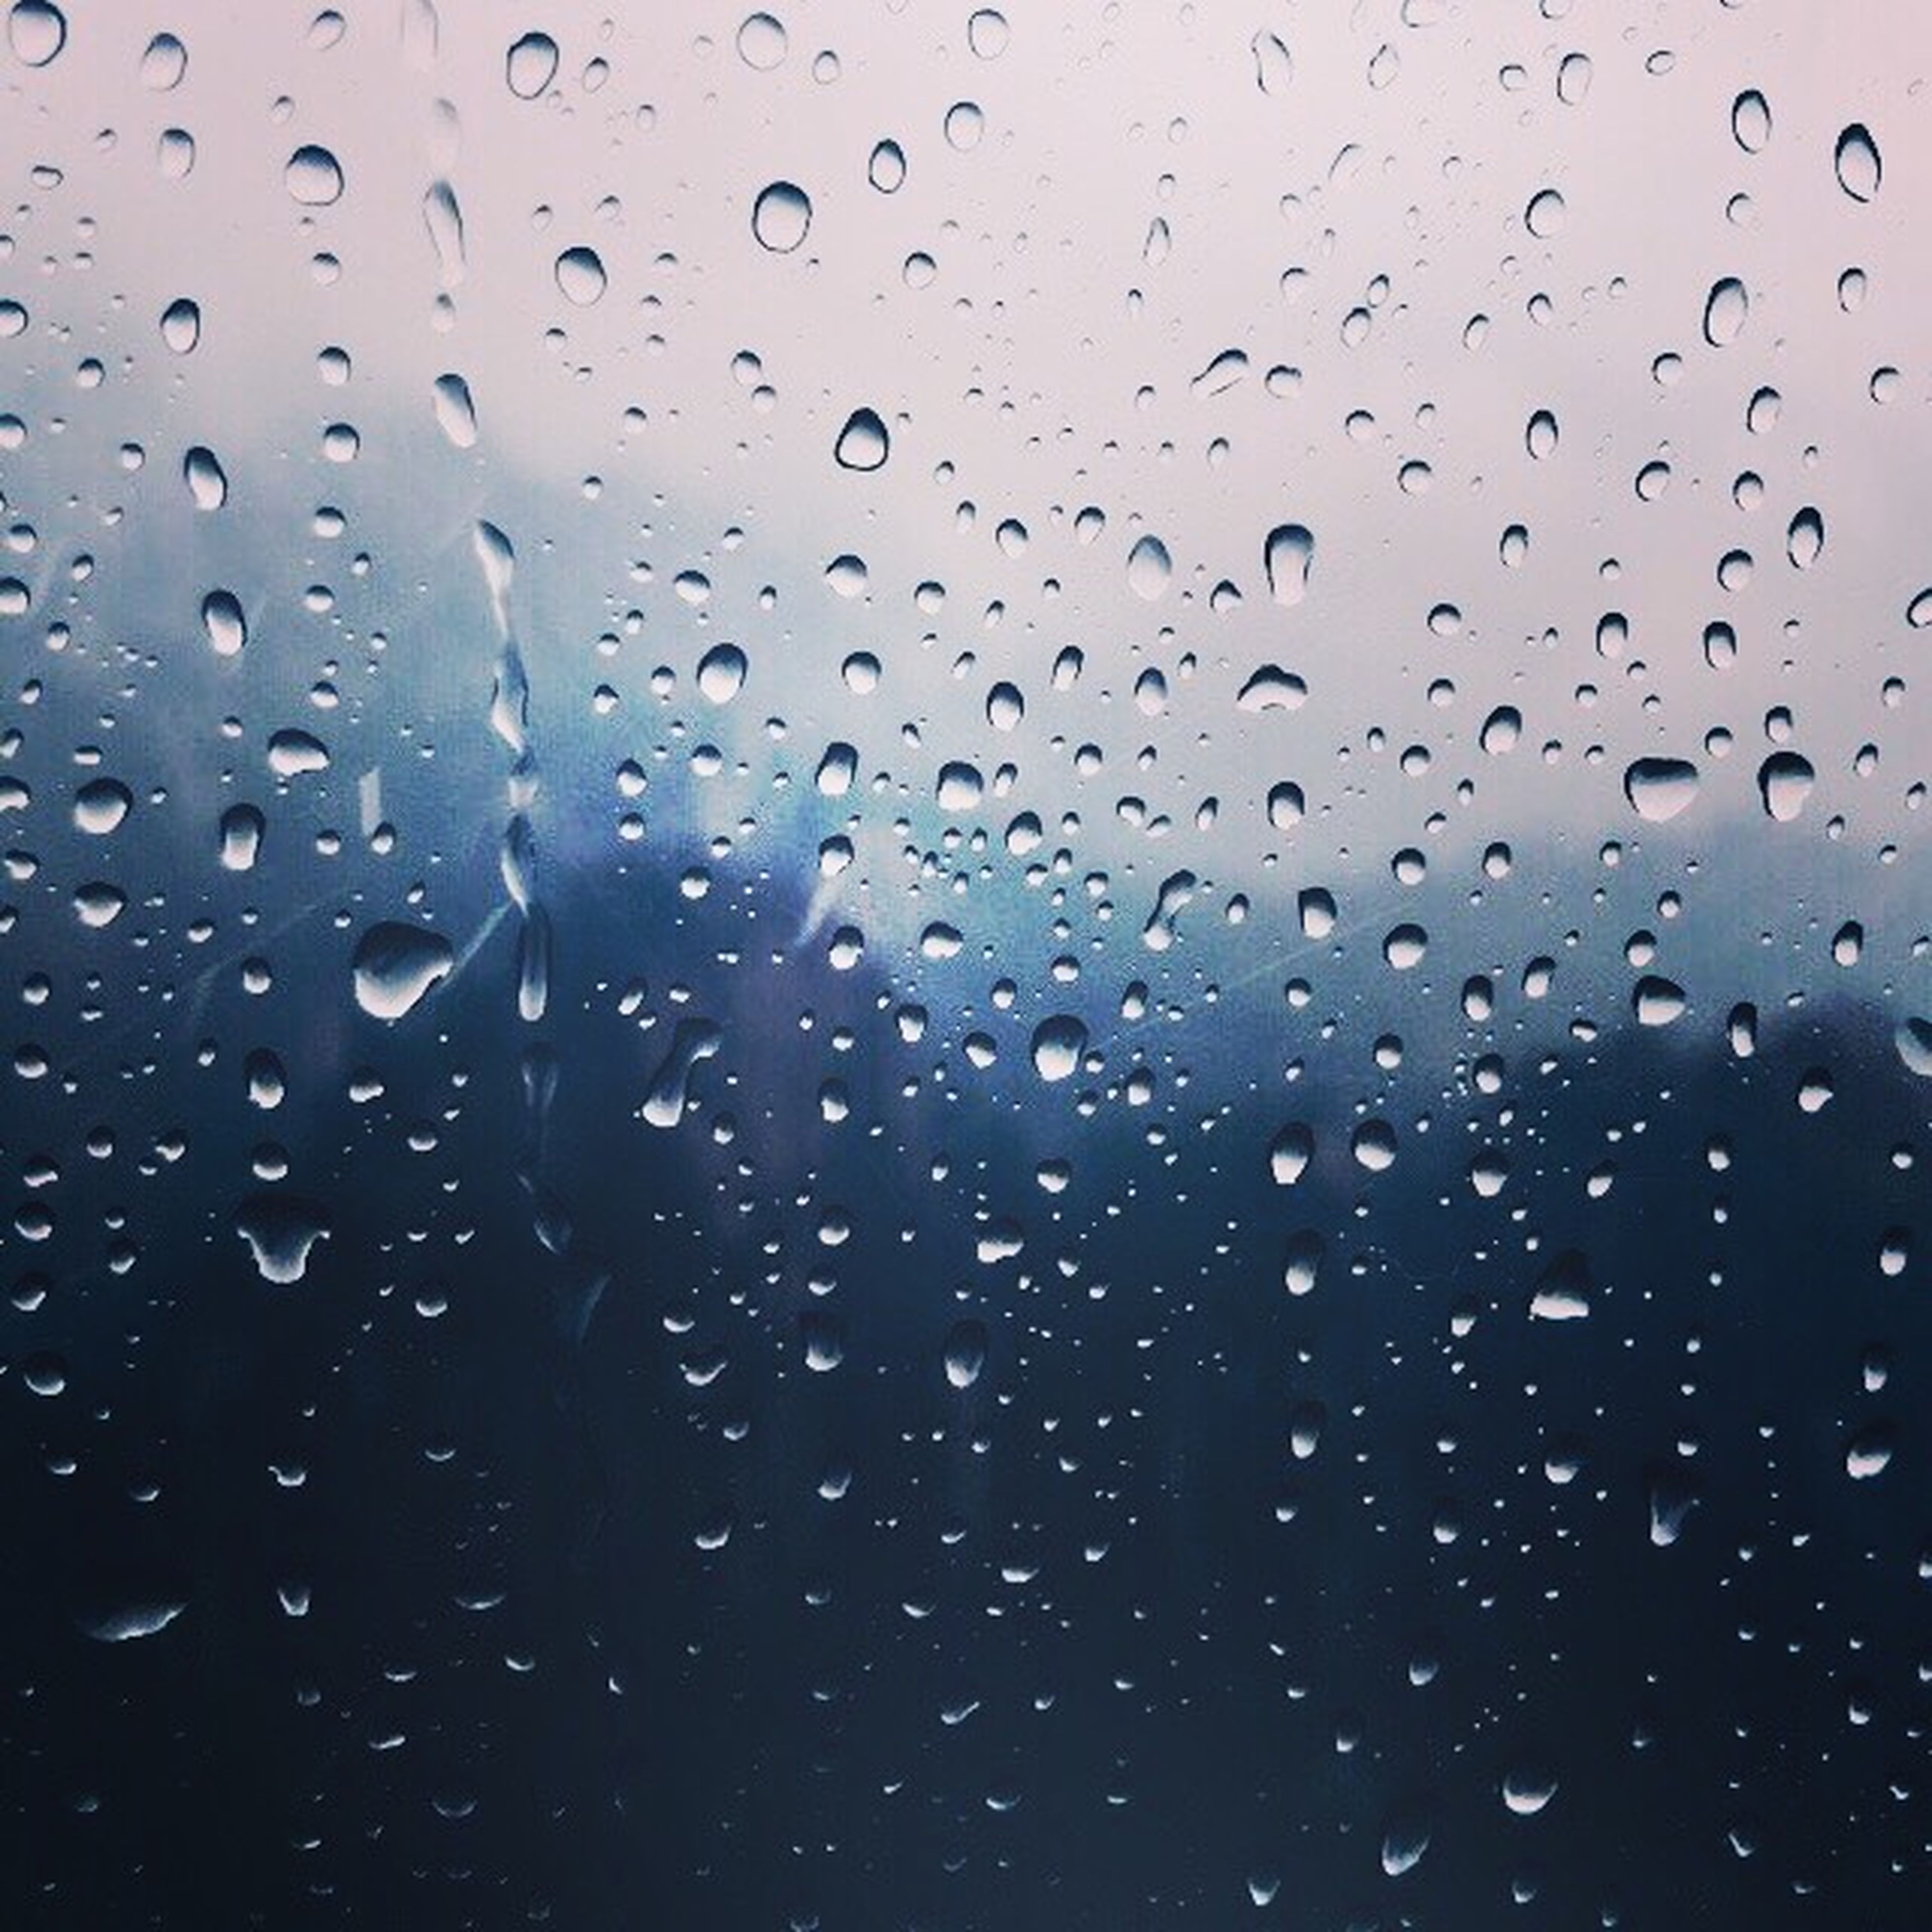 drop, window, wet, indoors, transparent, glass - material, rain, water, raindrop, weather, full frame, season, backgrounds, focus on foreground, close-up, glass, sky, monsoon, no people, day